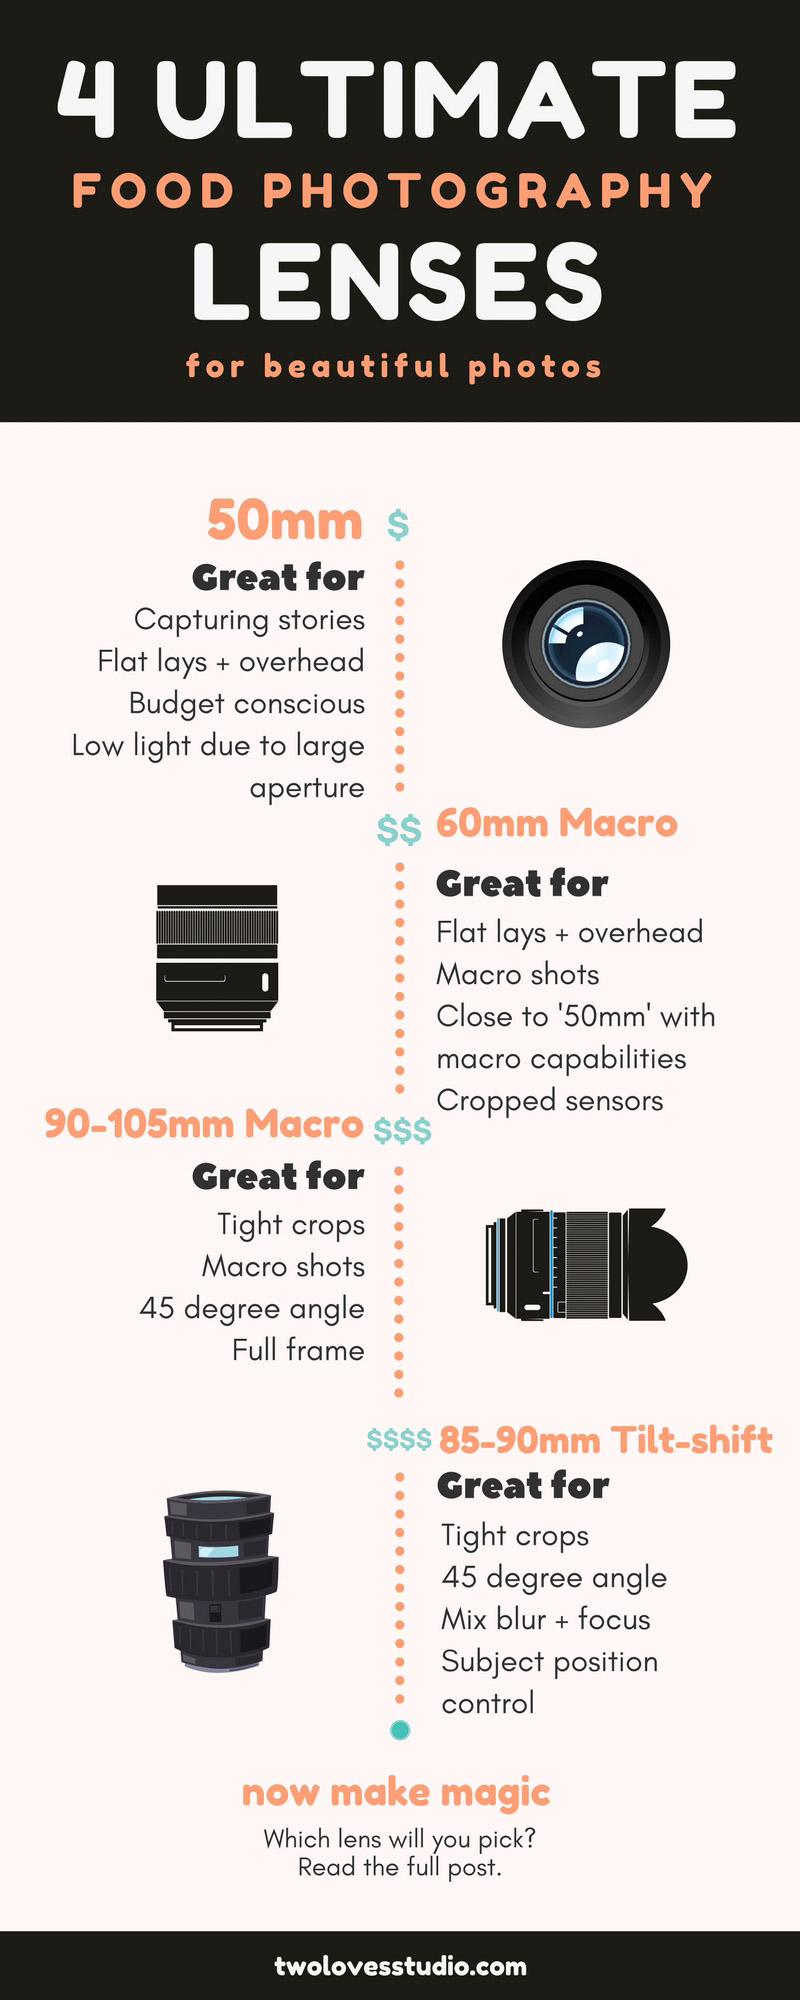 4 Ultimate Food Photography Lenses for Beautiful Photos